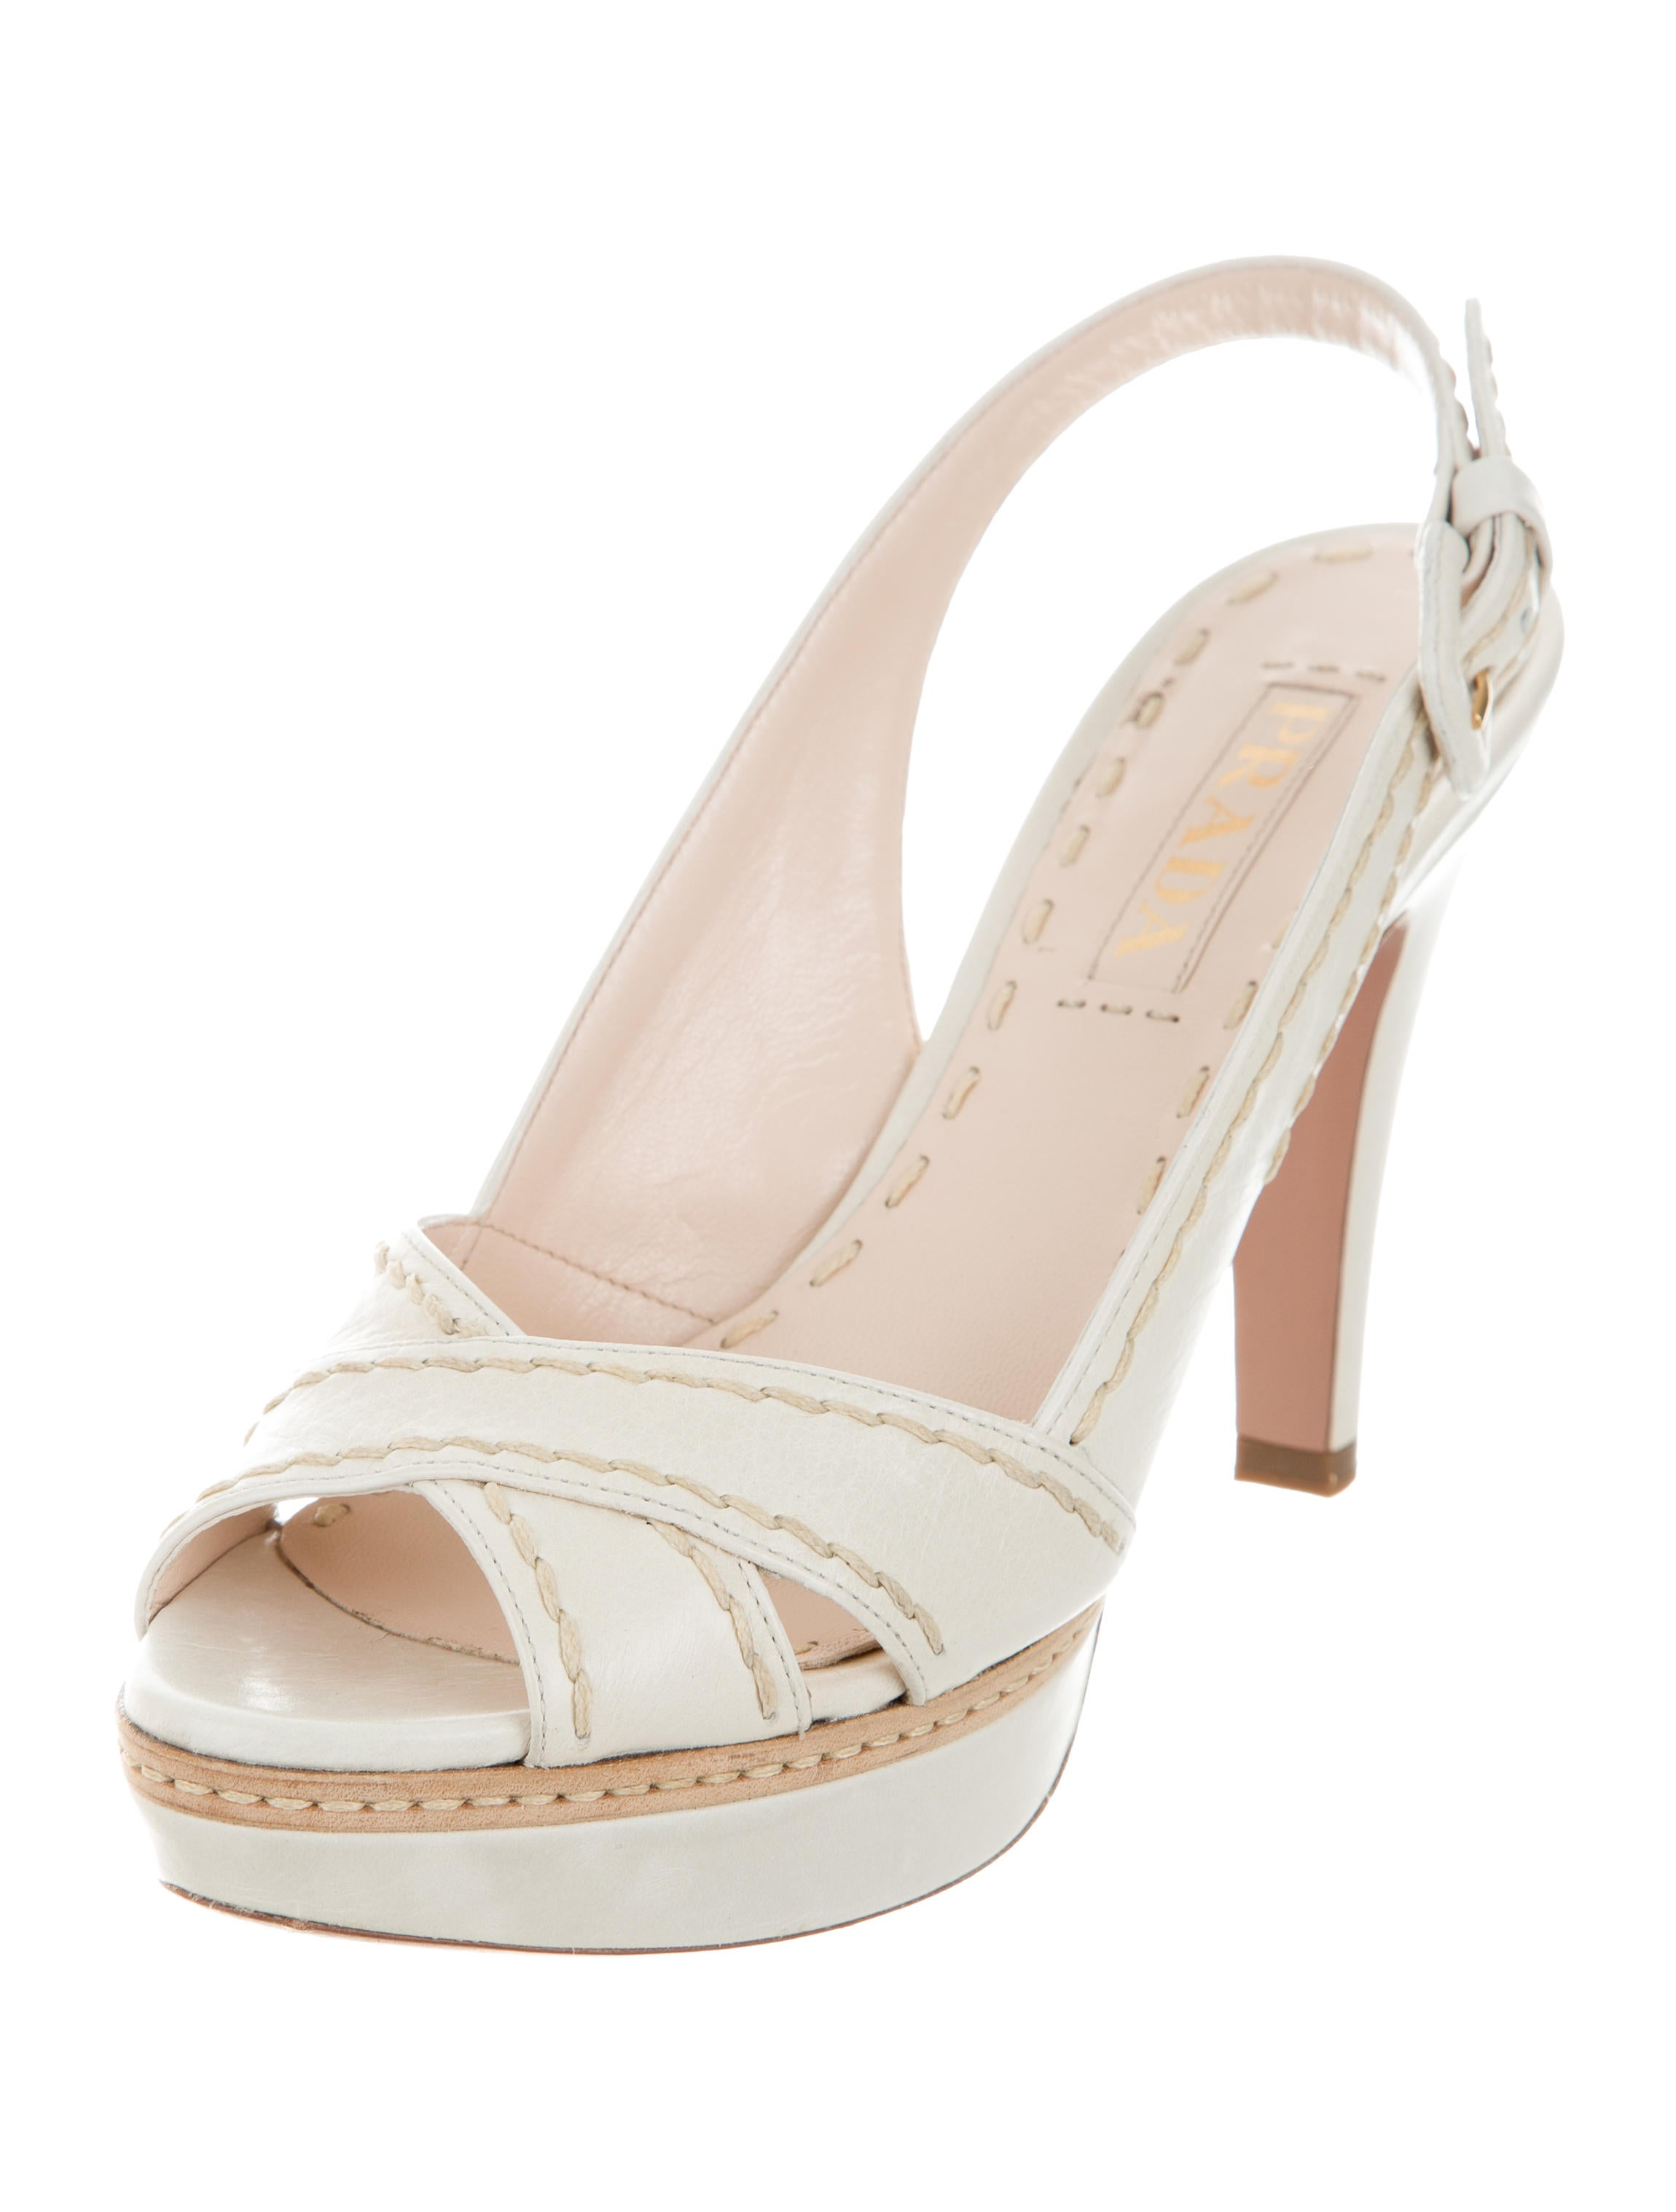 prada platform peep toe pumps shoes pra159929 the